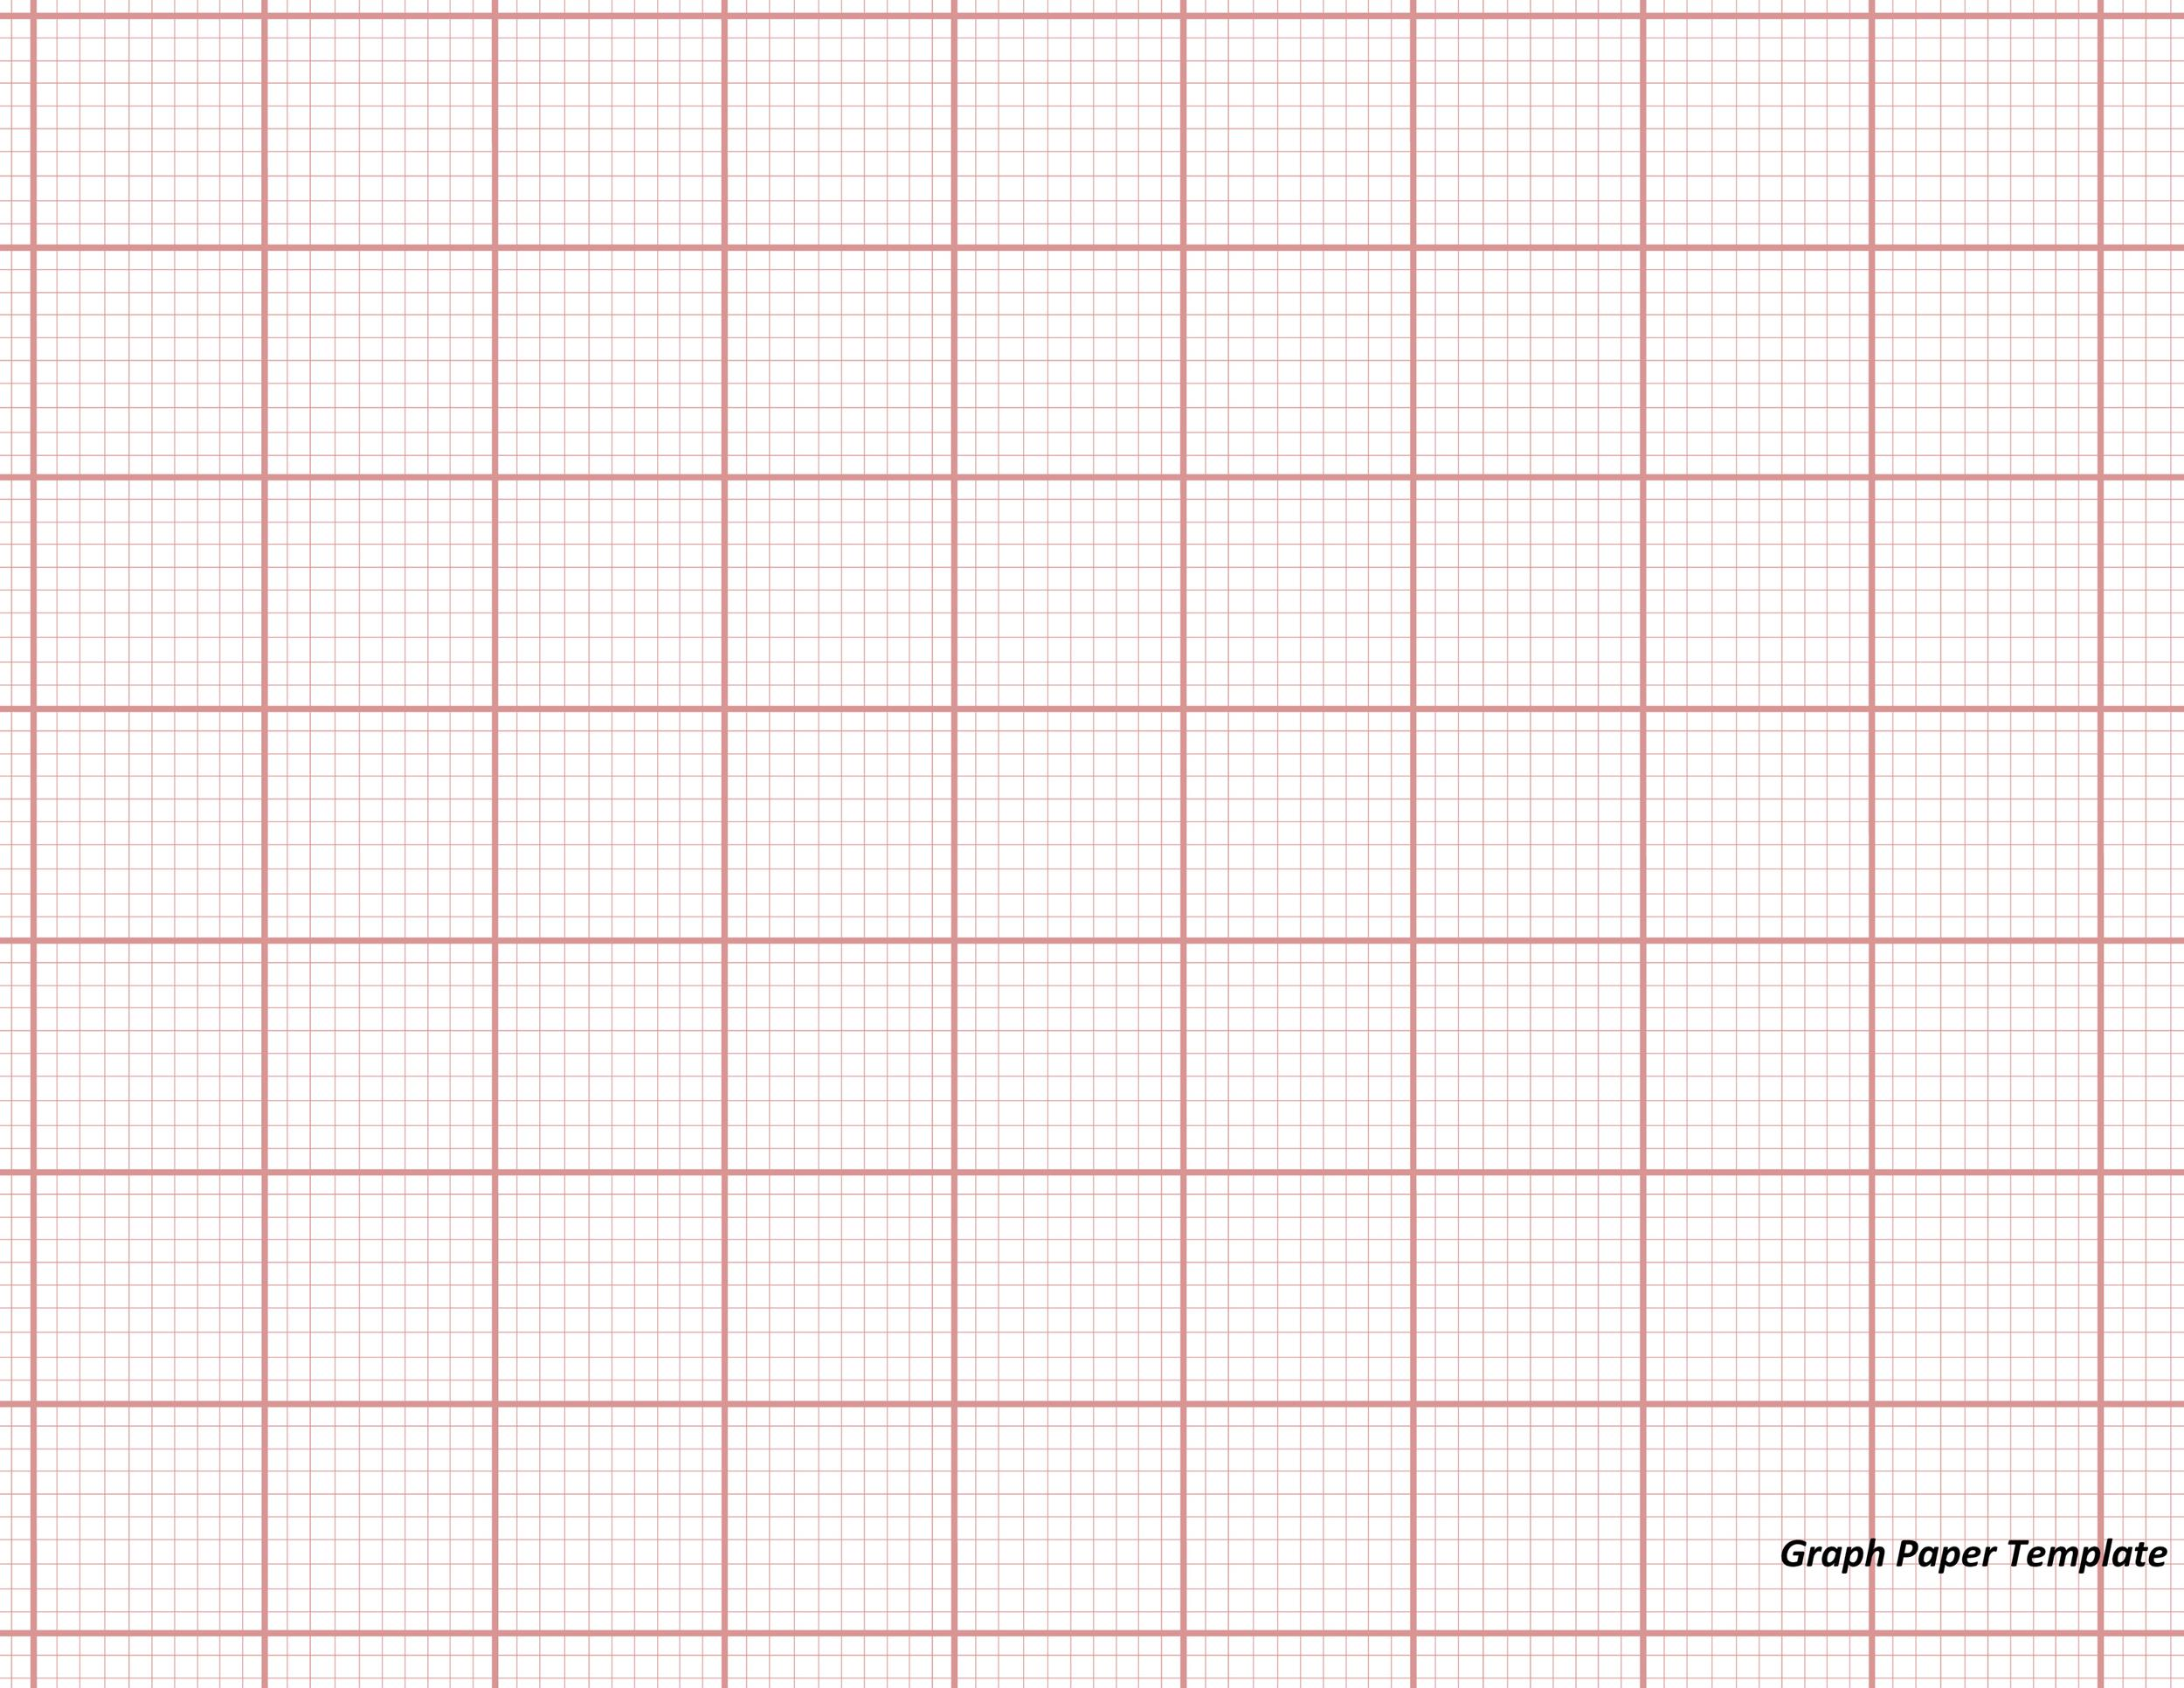 30+ Free Printable Graph Paper Templates (Word, PDF) - Template Lab - graphing paper printable template